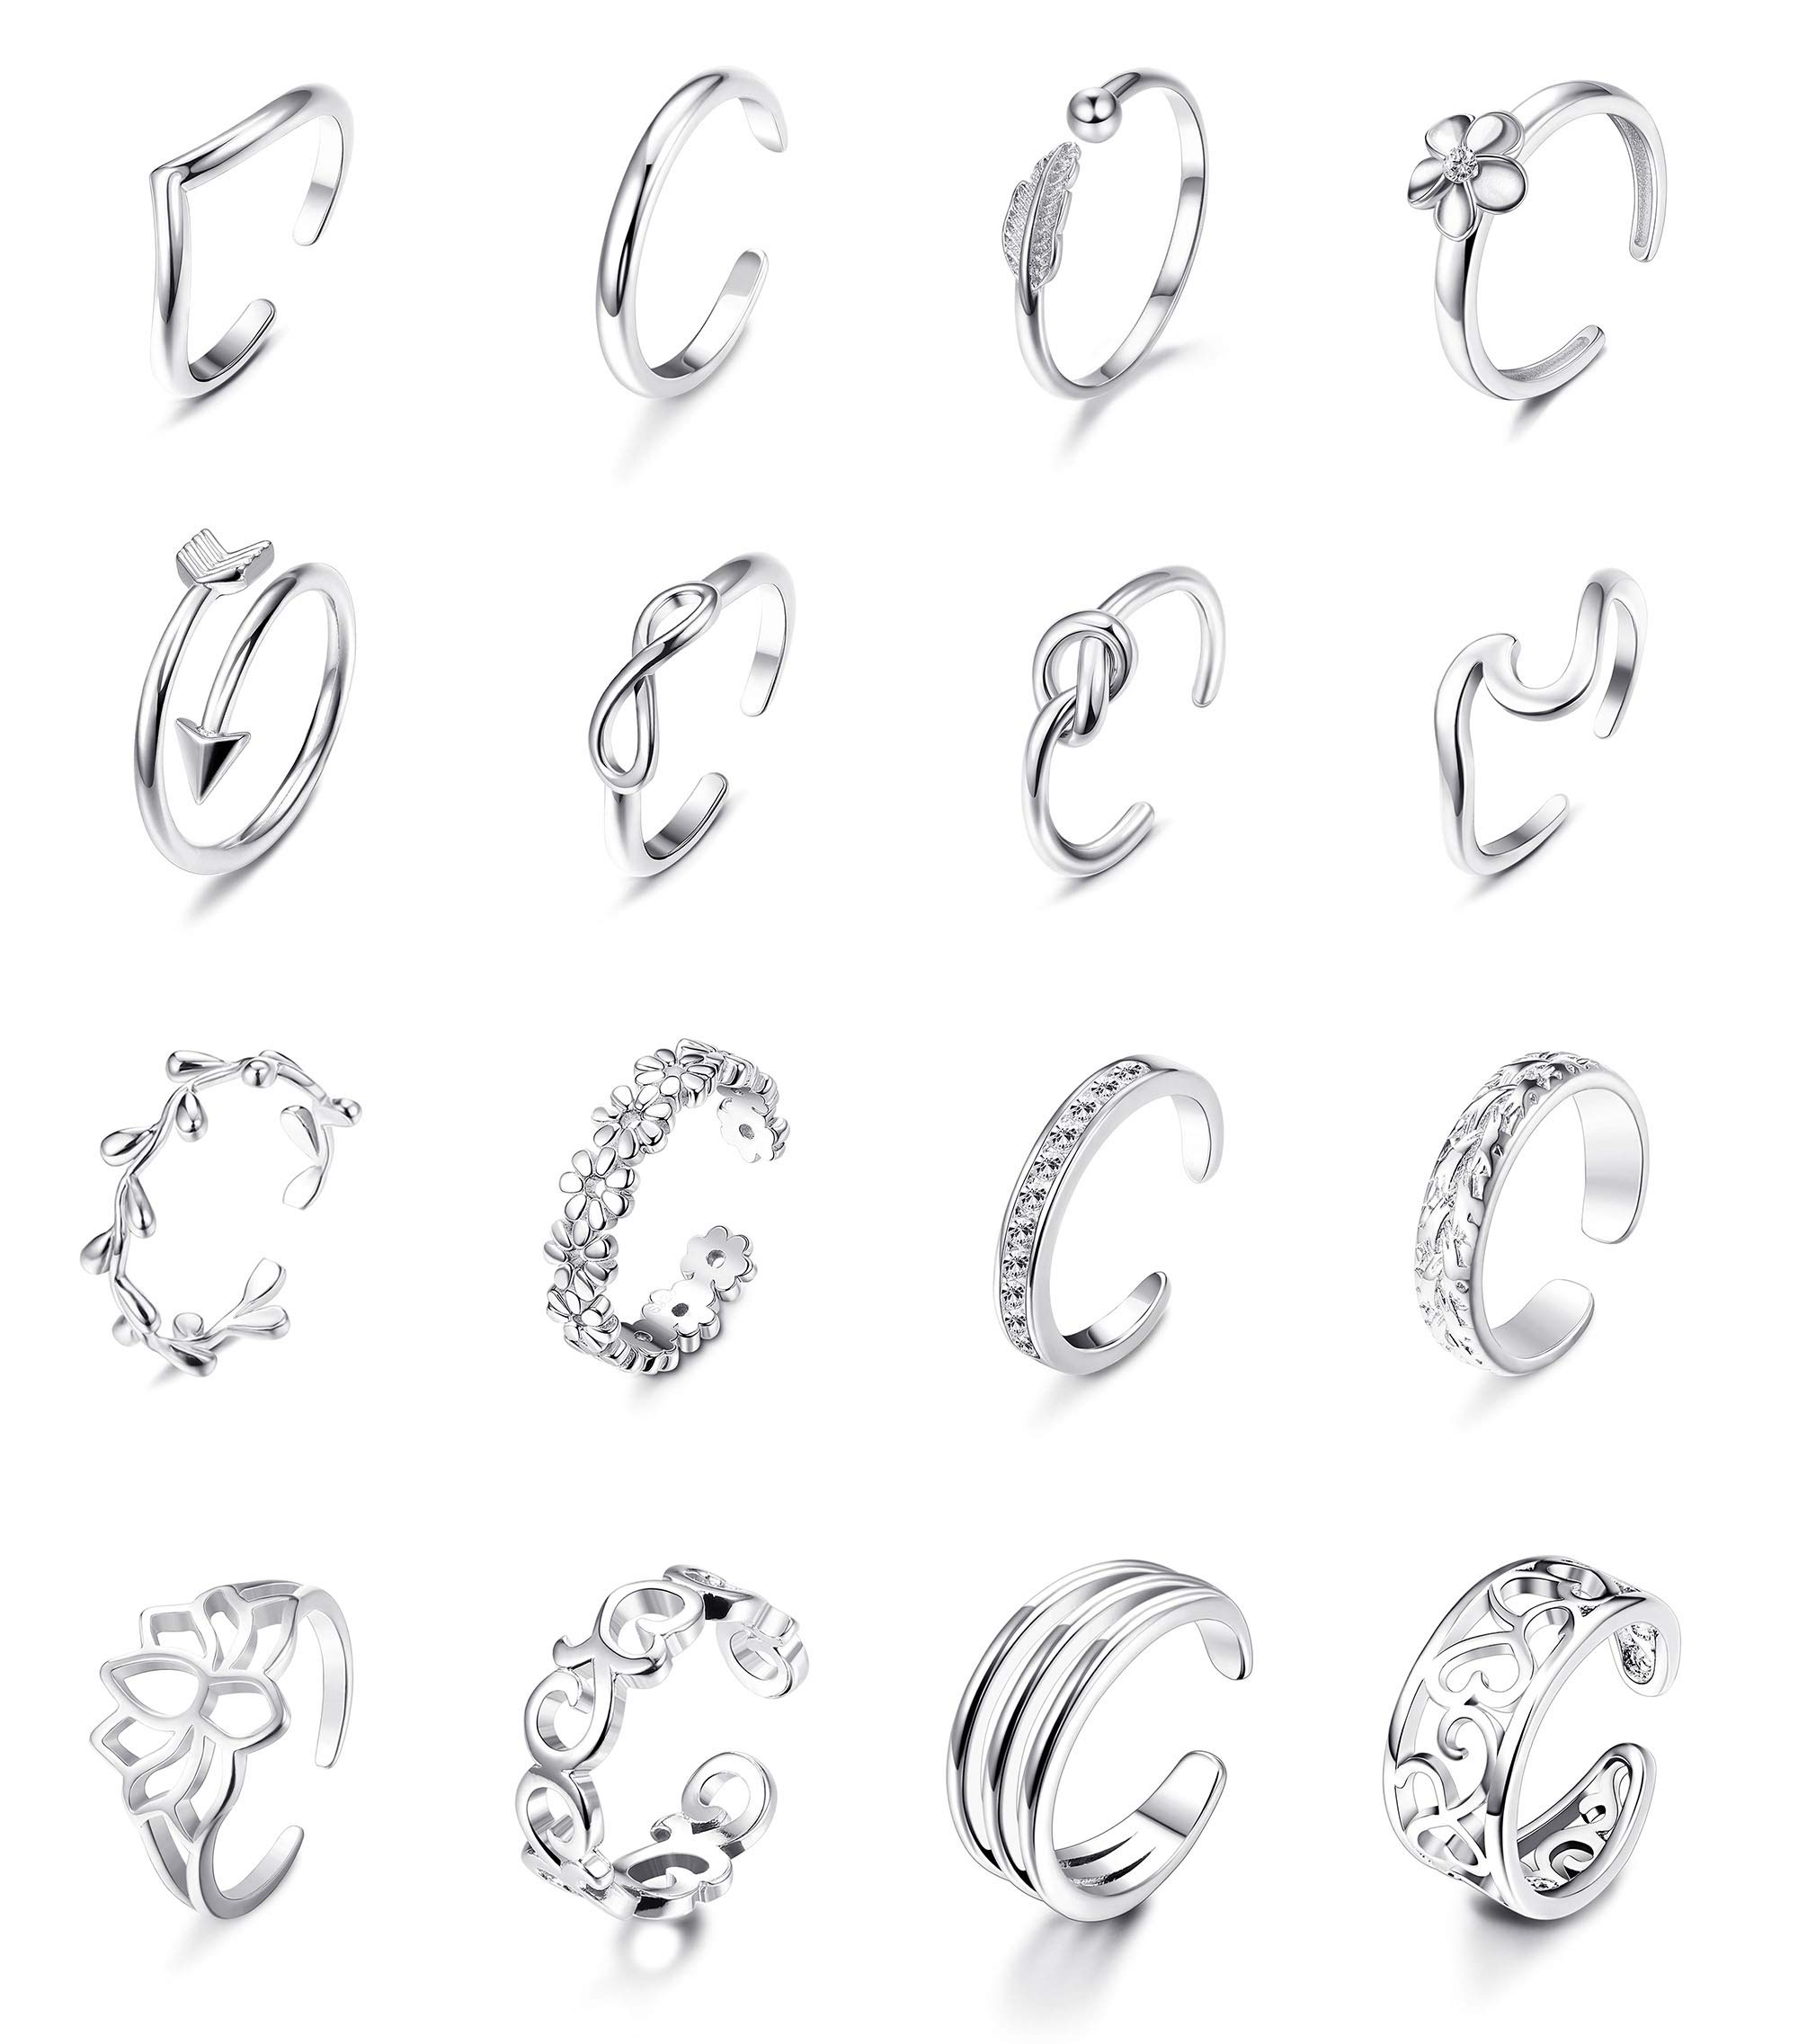 Jstyle 16Pcs Adjustable Toe Rings for Women Various Types Band Open Toe Ring Set Gold Silver Tone Hawaiian Foot Gift Jewelry